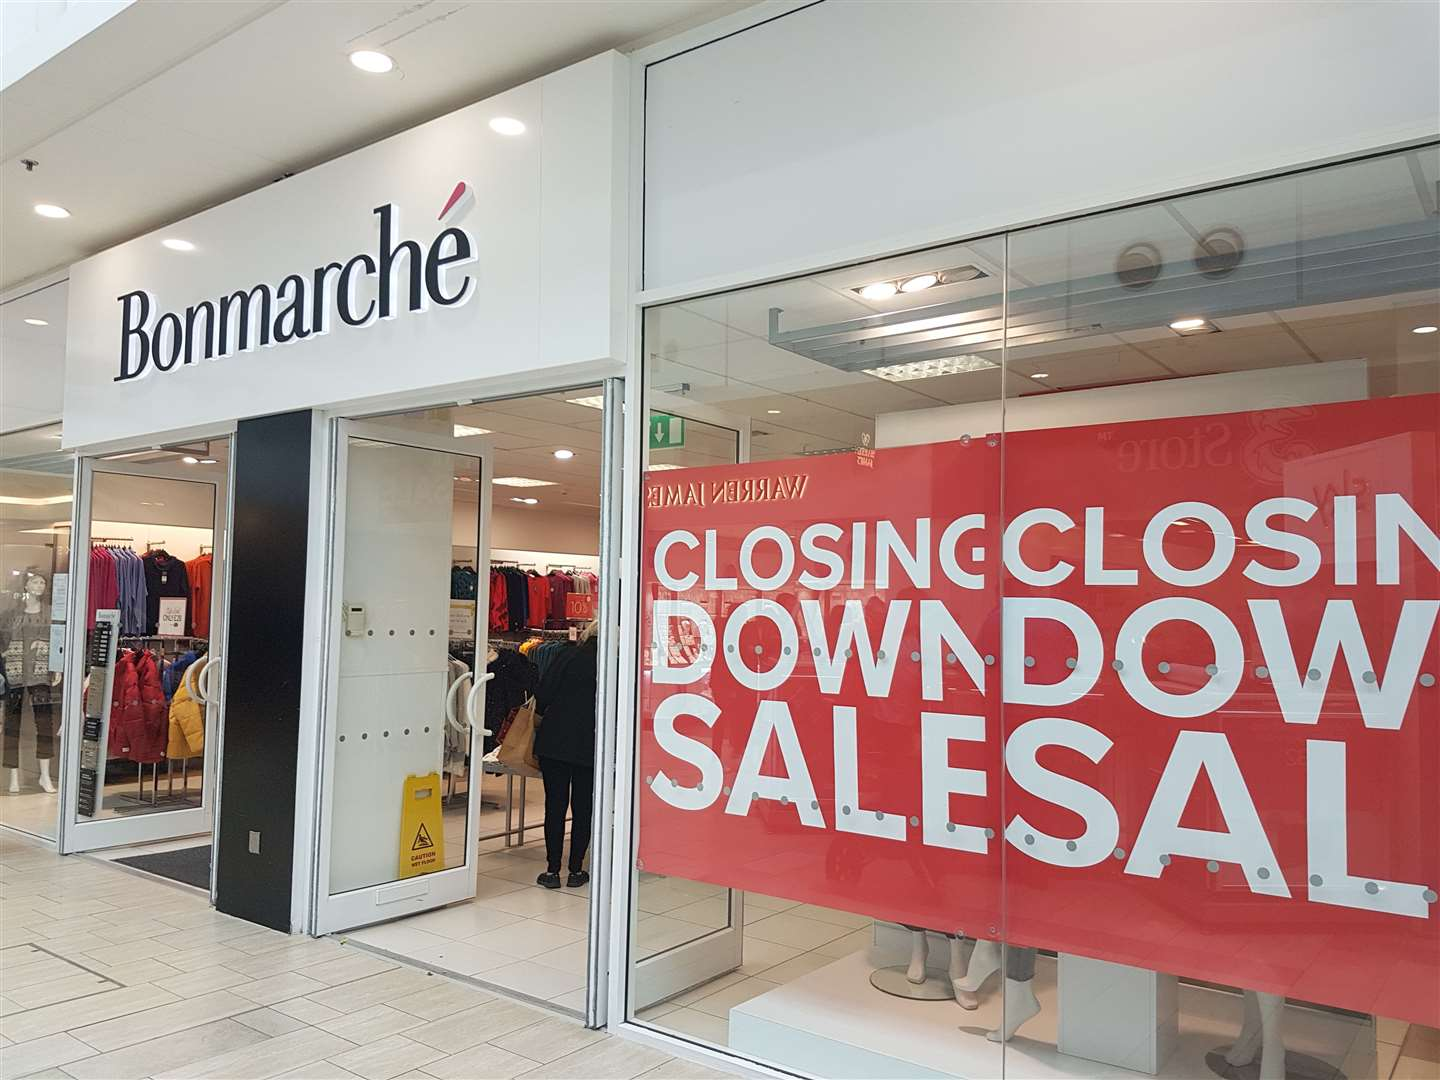 Bon Marche's Ashford store has 'closing down sale' signs on its windows today (21702957)